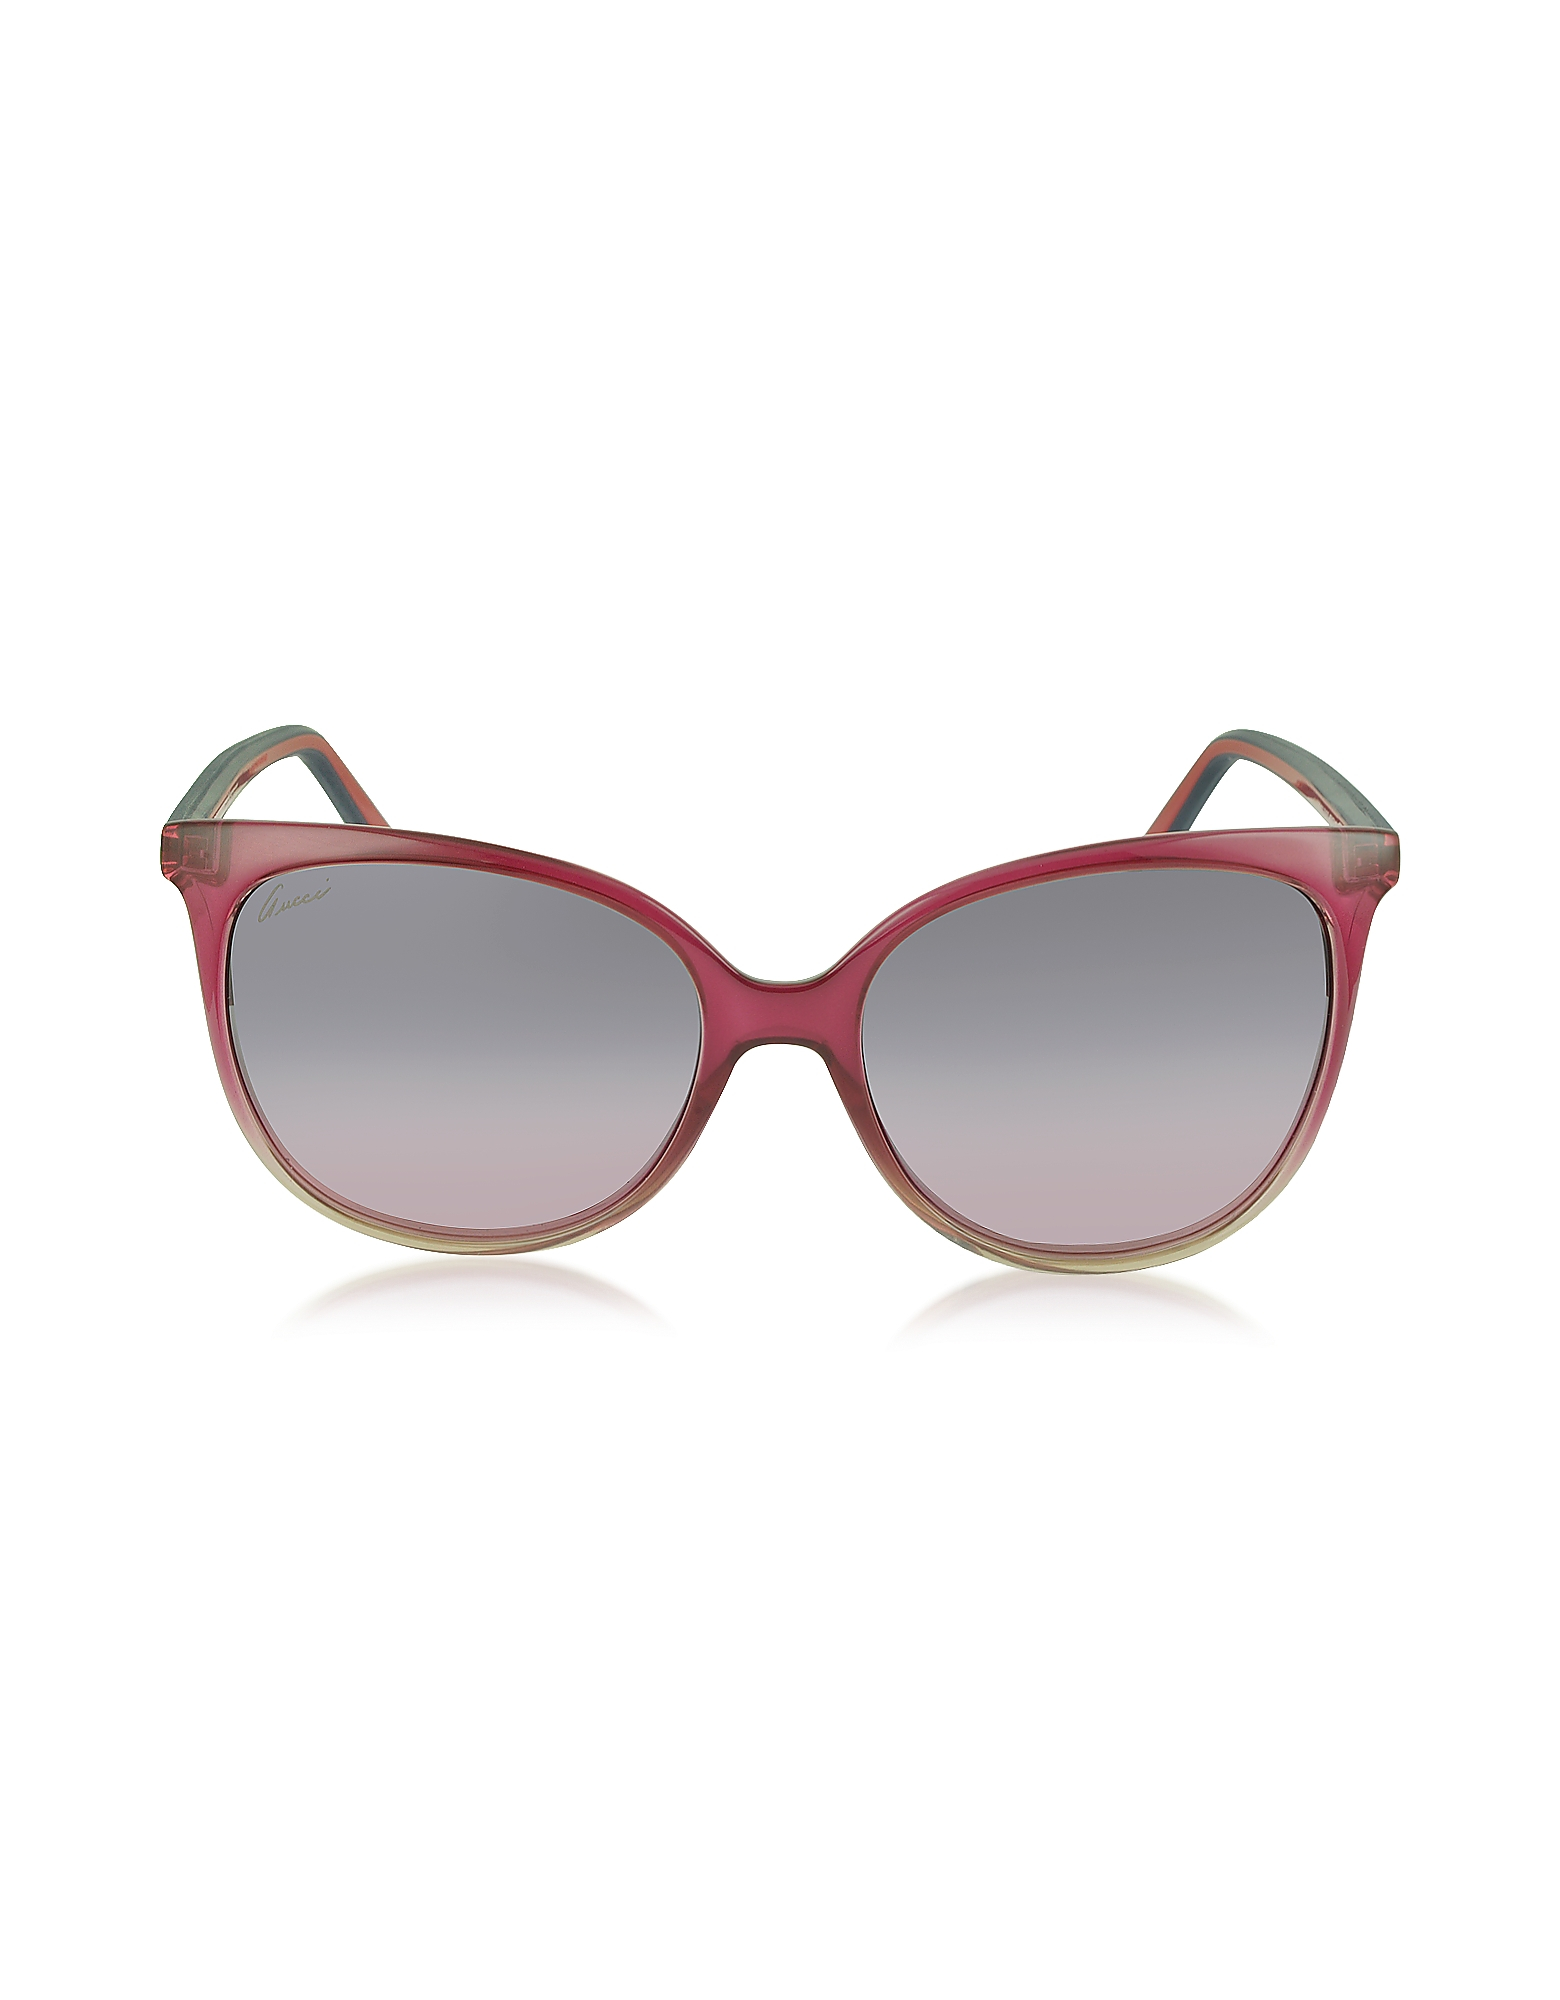 Lyst - Gucci Gg 3649/s Rubber Effect Web Cat Eye ...